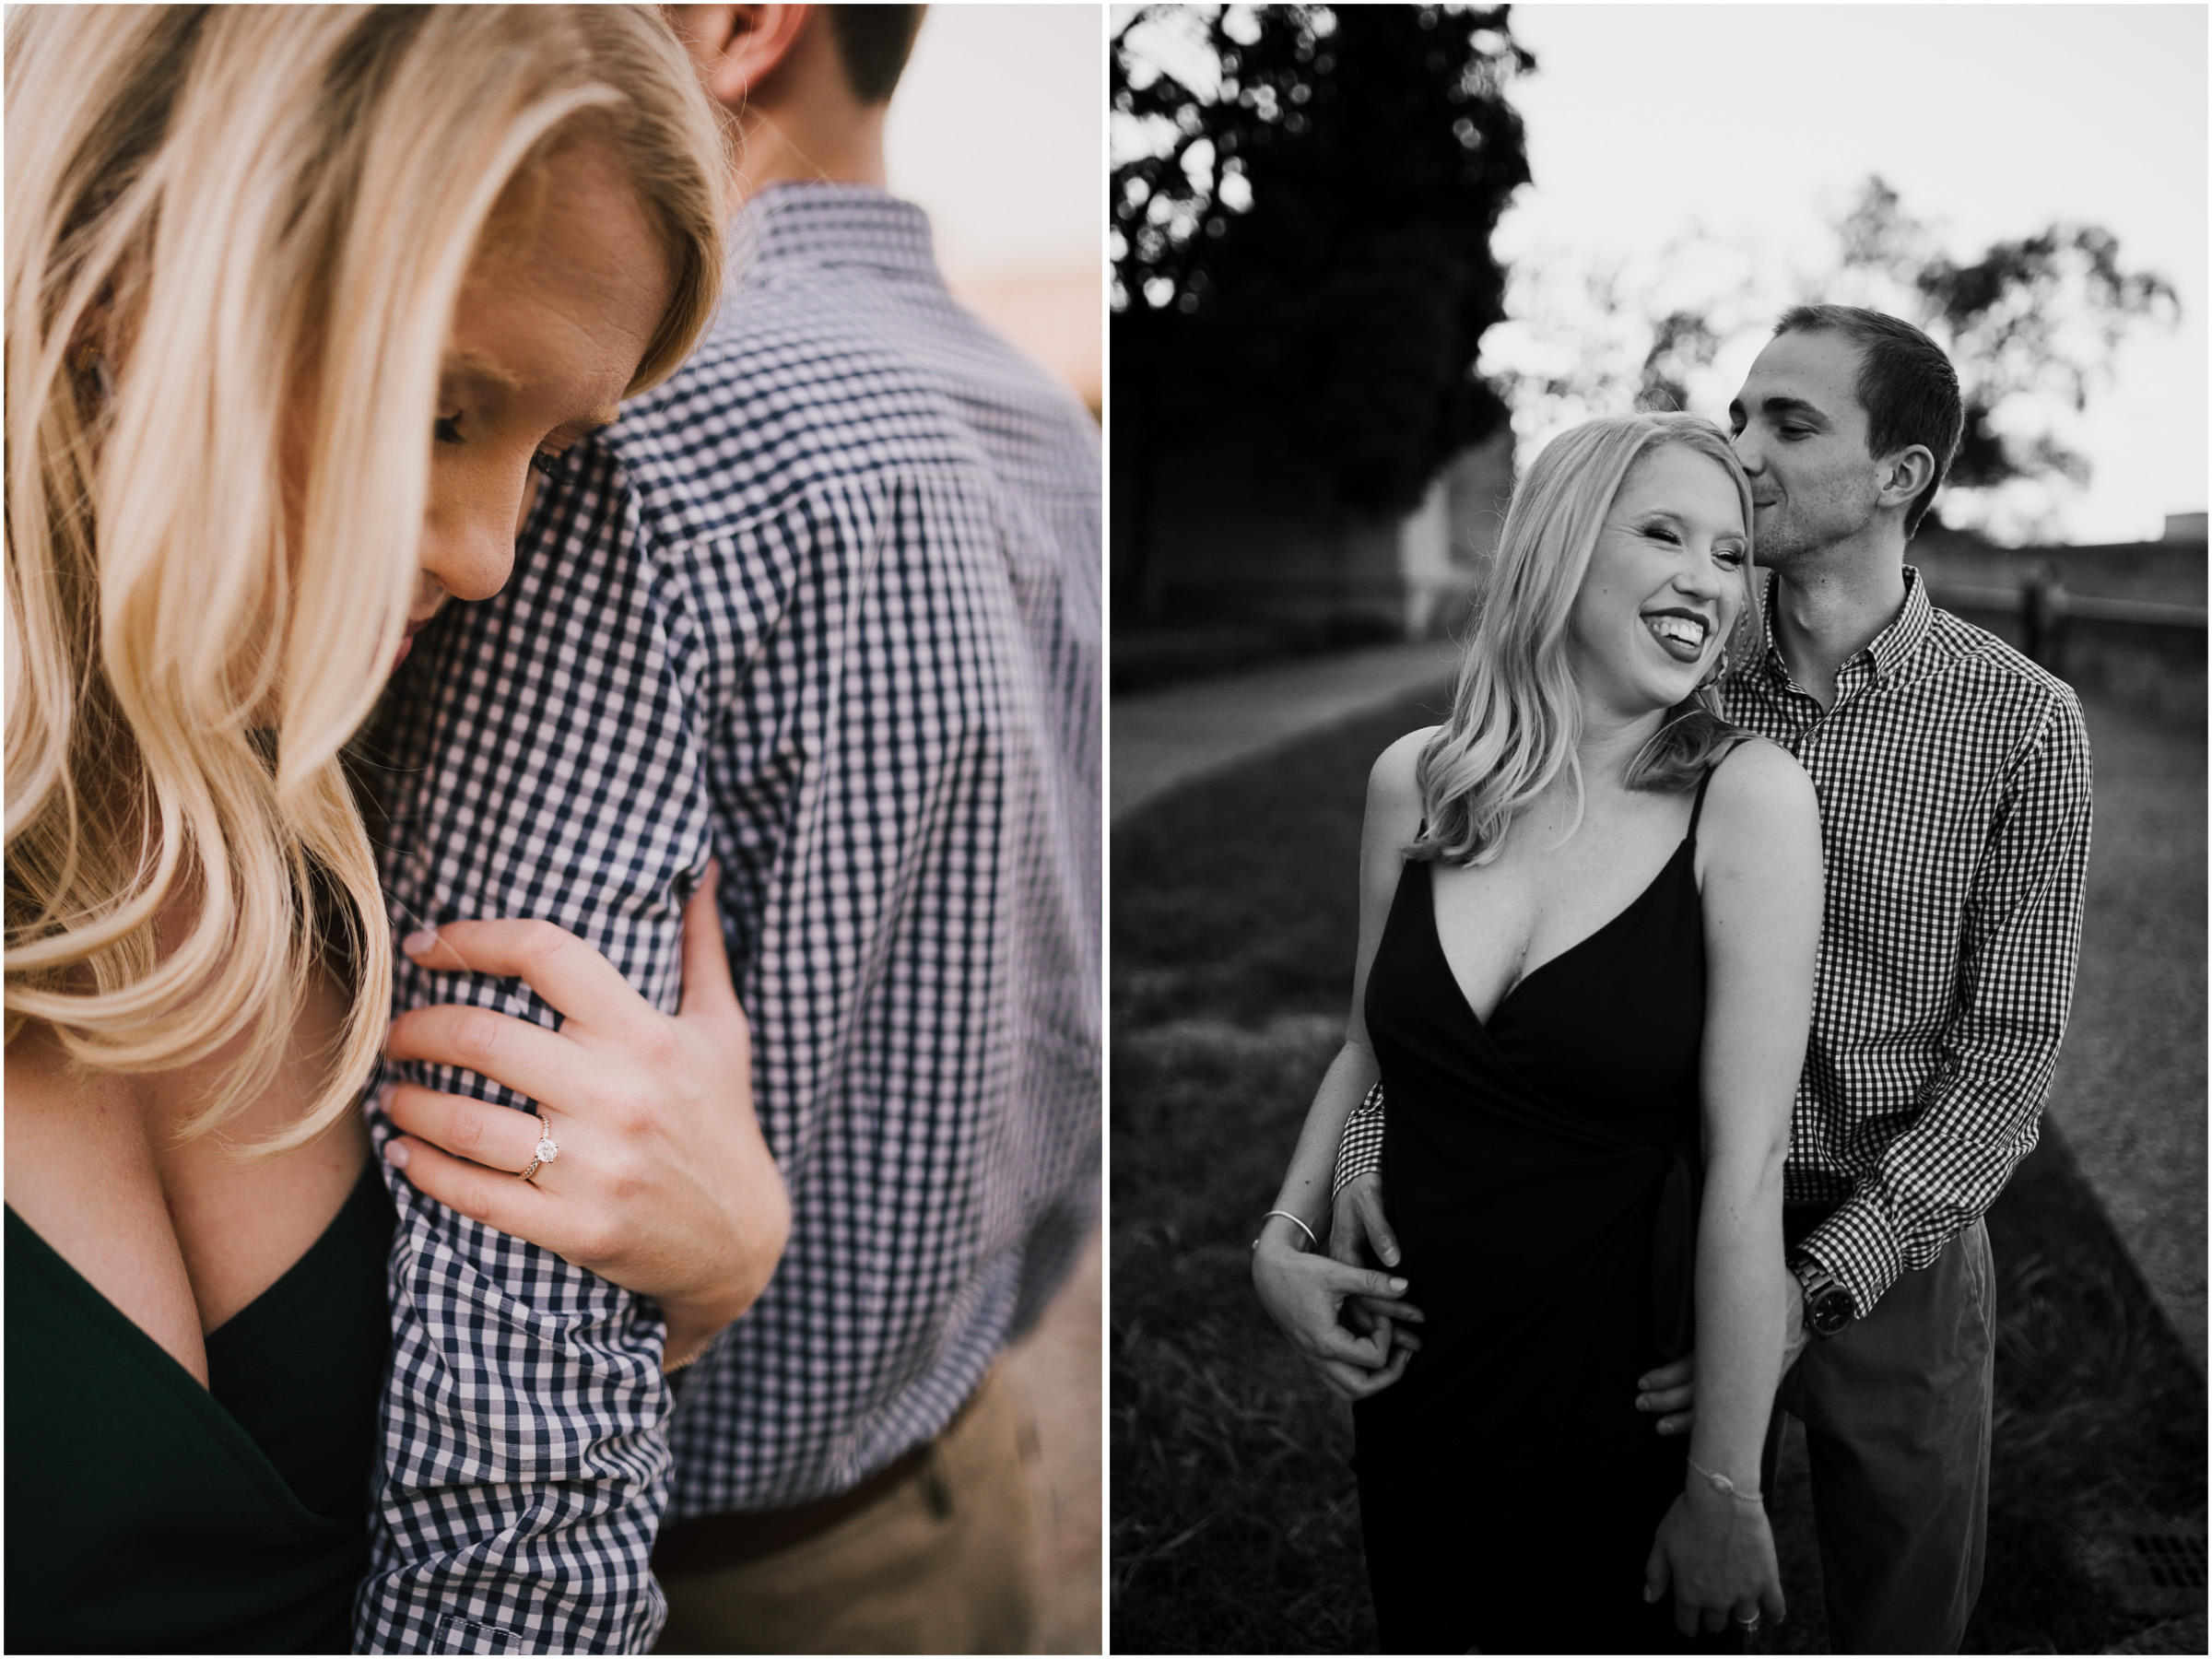 alyssa barletter photography nelson atkins art museum classic summer engagement session with dog-22.jpg